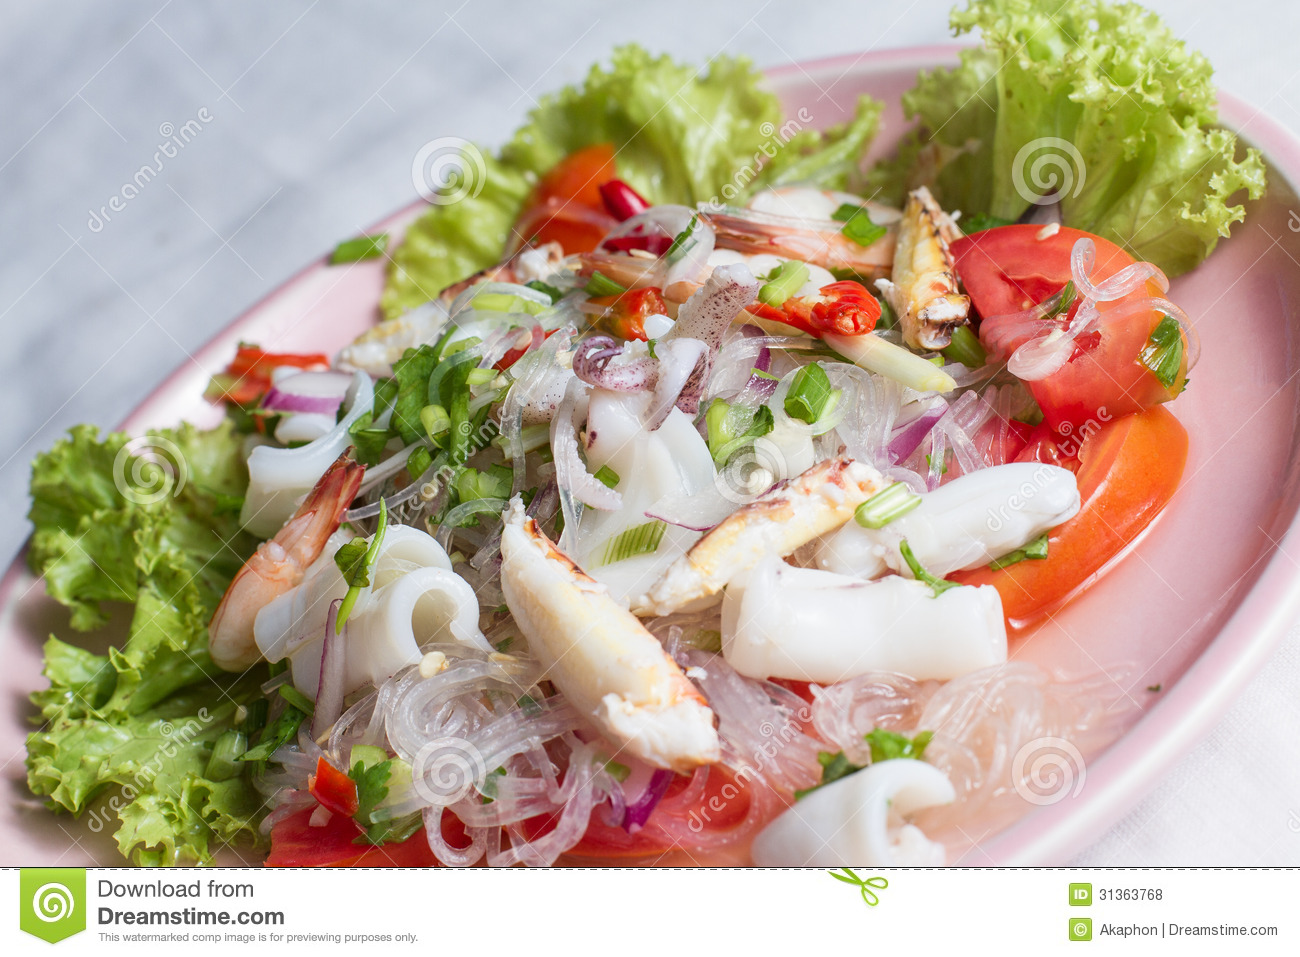 Cellophane noodle Spicy salad with seafood on pink plate.